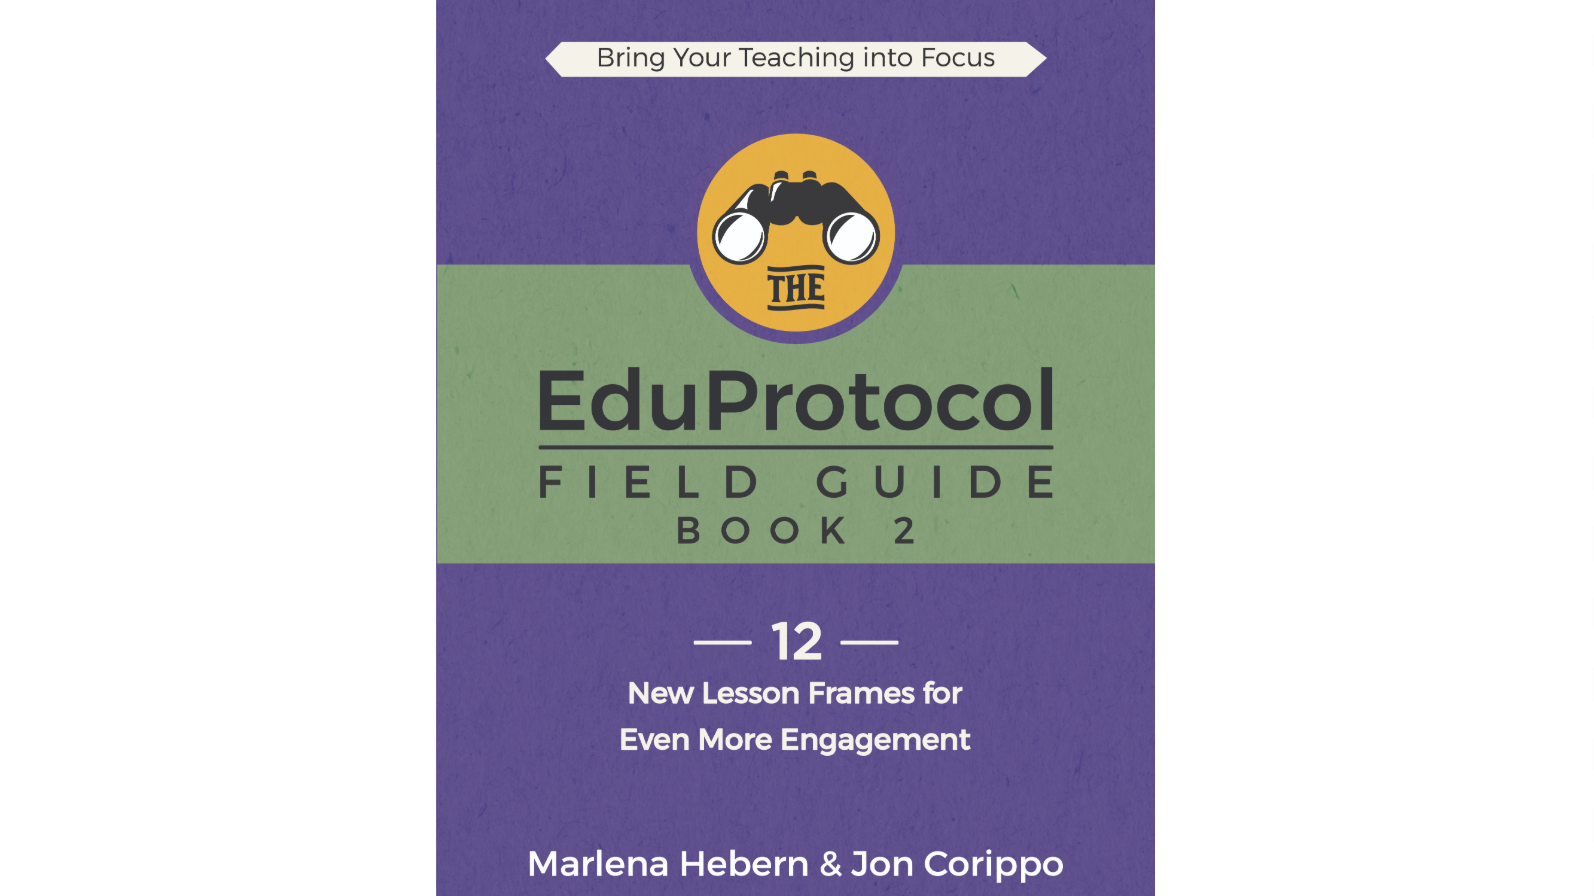 The EduProtocol Field Guide Book 2